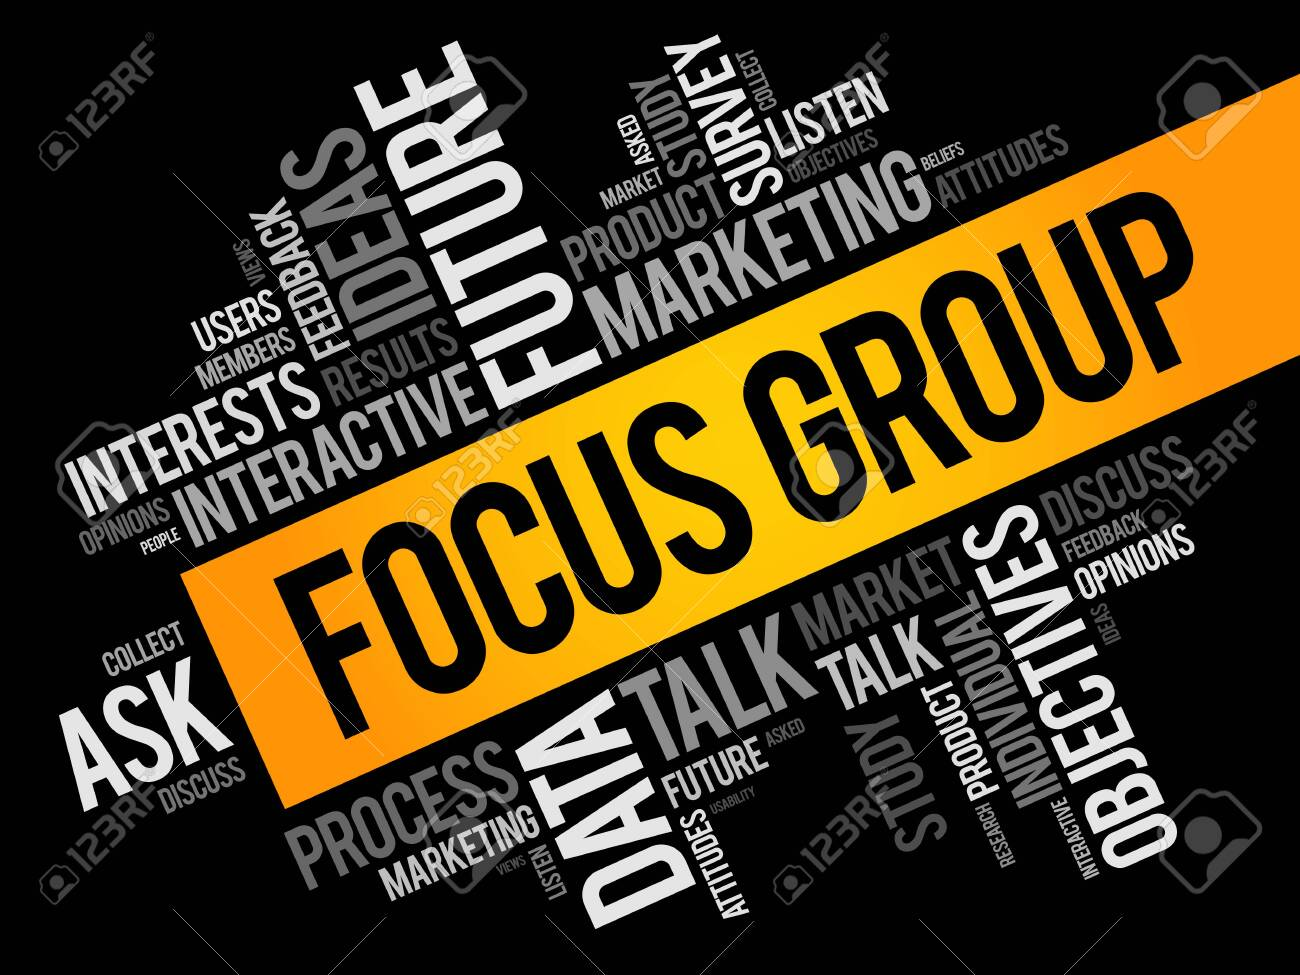 Focus Group word cloud collage, business concept background - 123779367